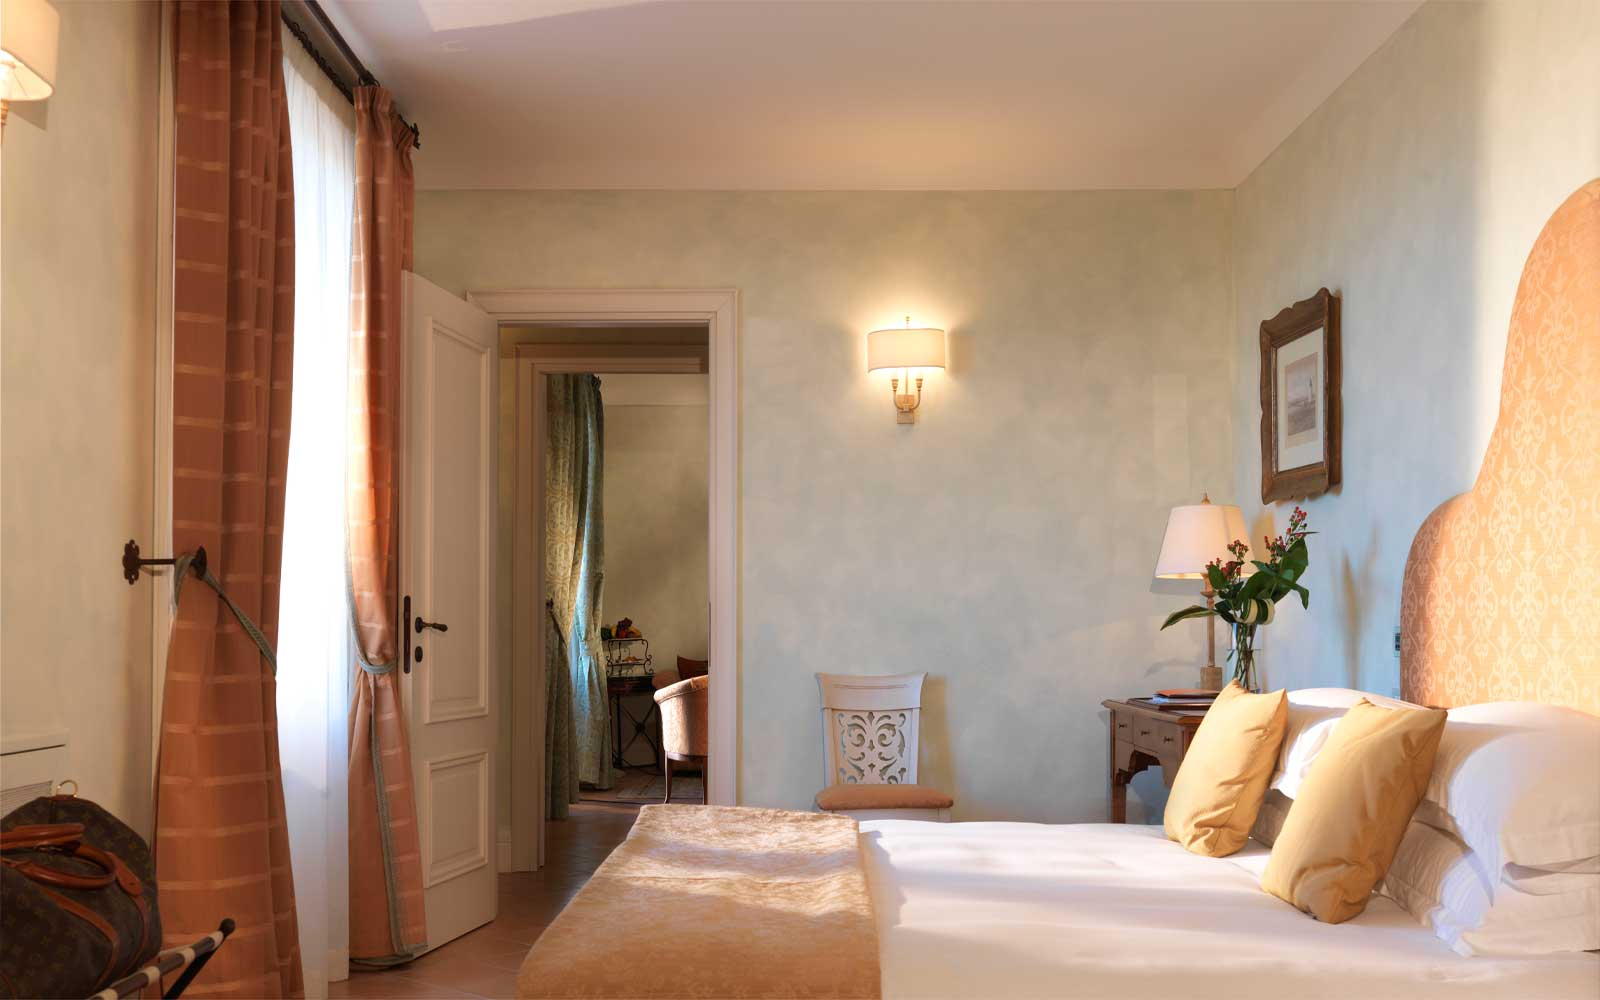 Superior Room at Hotel Giardino Di Costanza